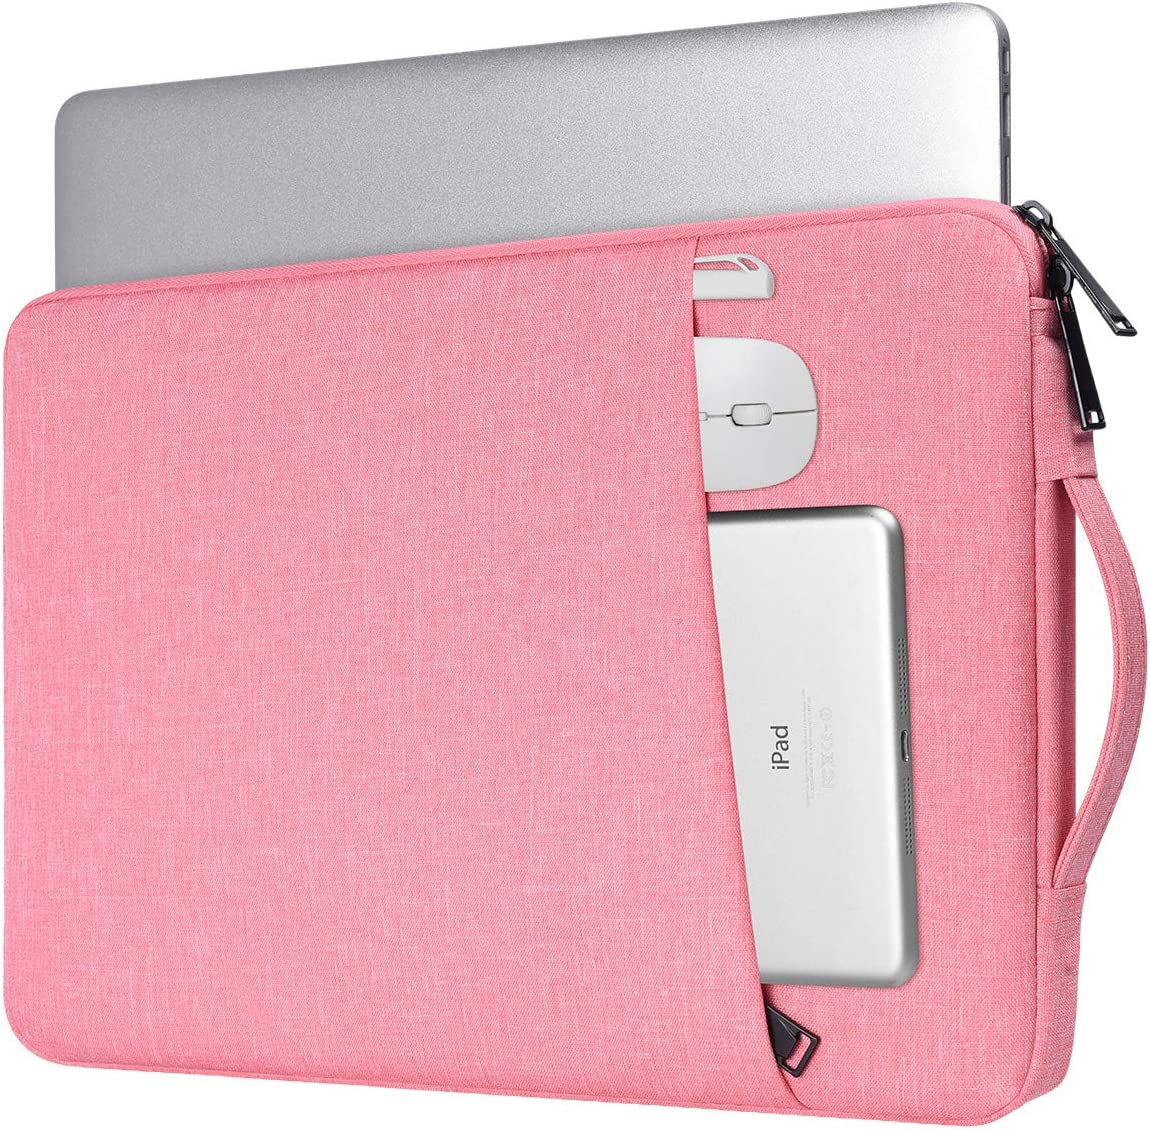 iKammo 14 Inch Laptop Sleeve Case Bag for Asus Chromebook 14/Asus Vivobook 14, Lenovo ThinkPad 14/Lenovo Flex 14/Lenovo Yoga, Dell XPS 15 7590, Acer HP Chromebook 14, MacBook Pro 15 Inch(Pink)